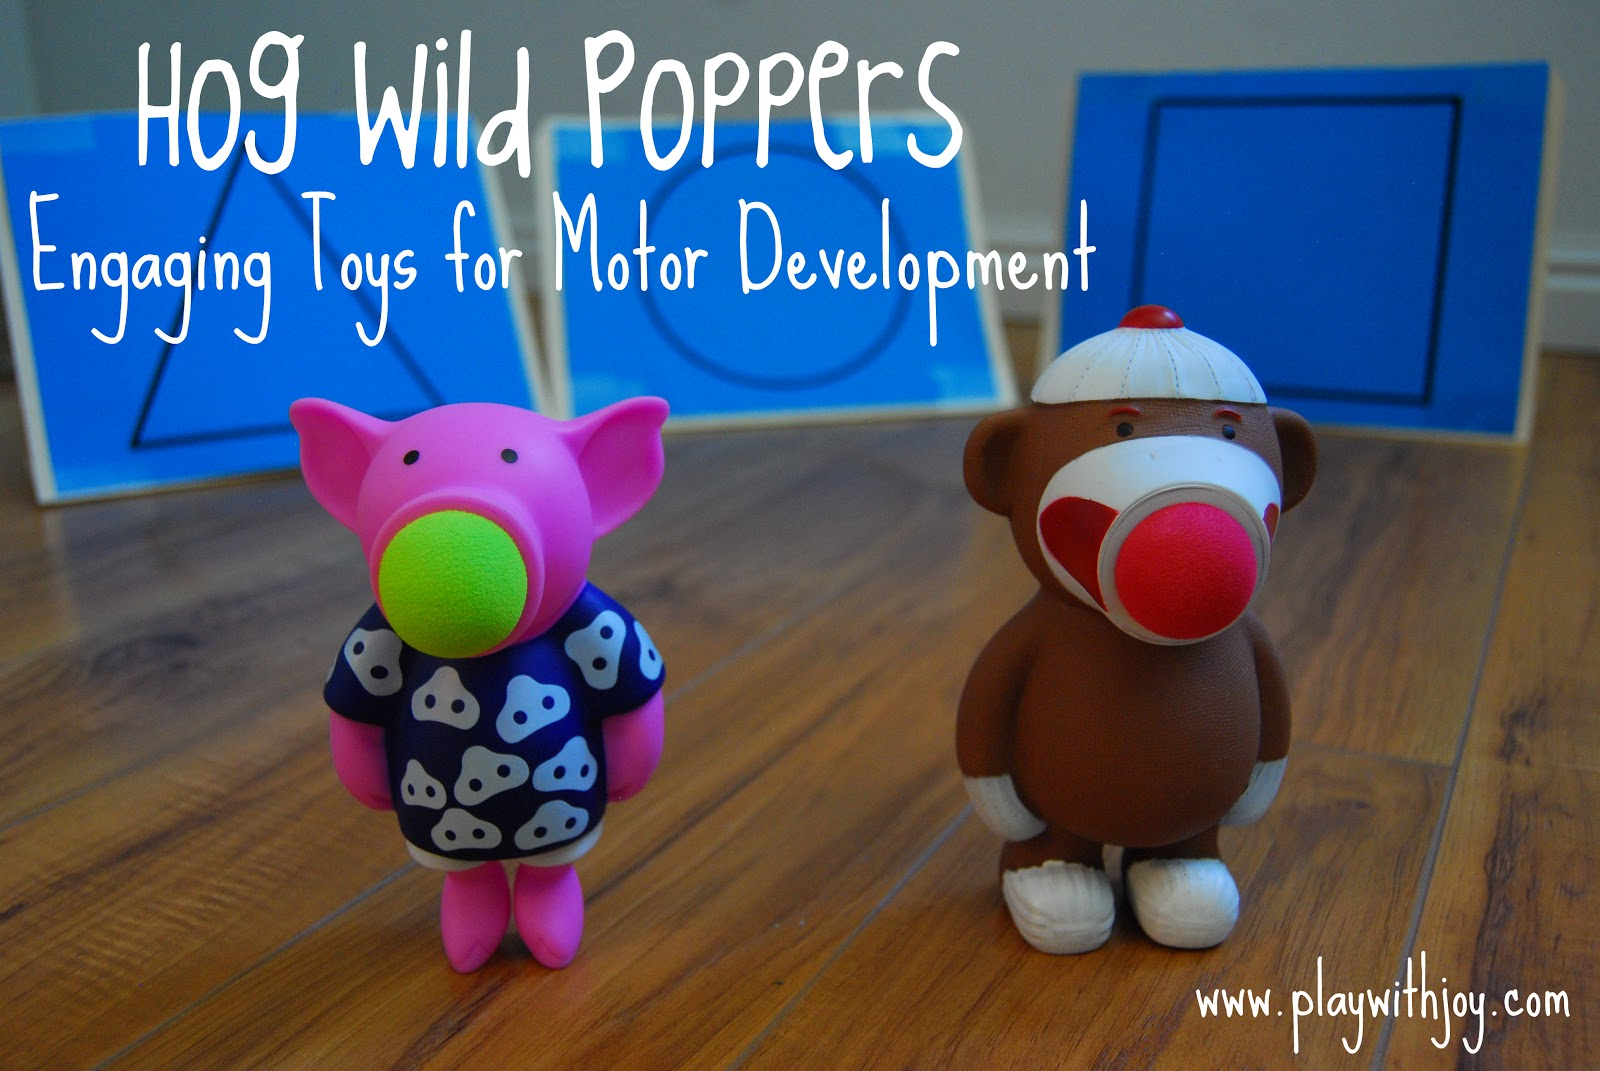 Play With Joy Llc Show And Tell Hog Wild Poppers